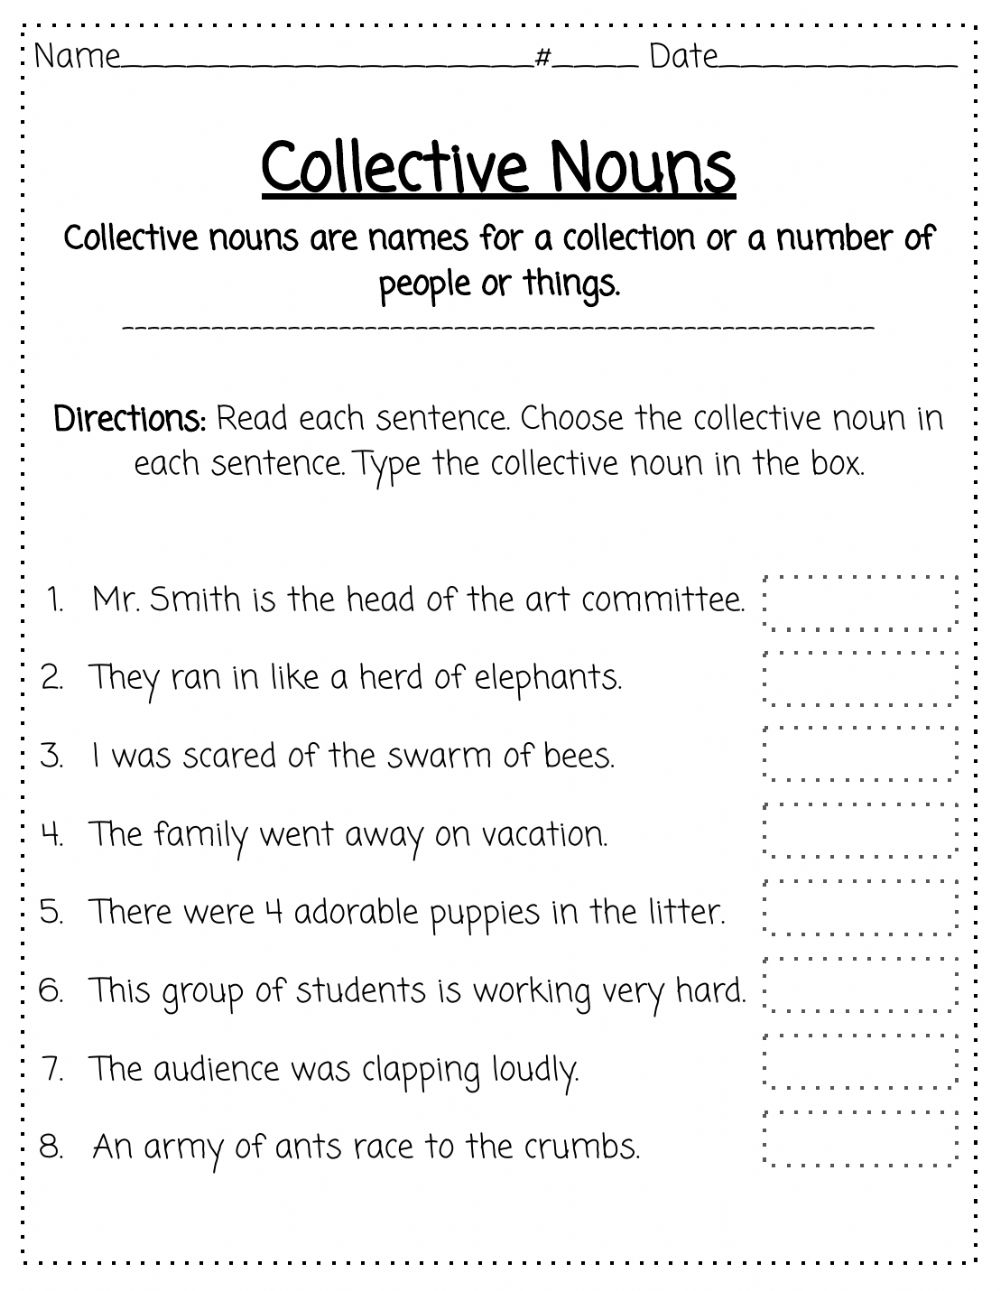 medium resolution of Collective Nouns worksheet for 2